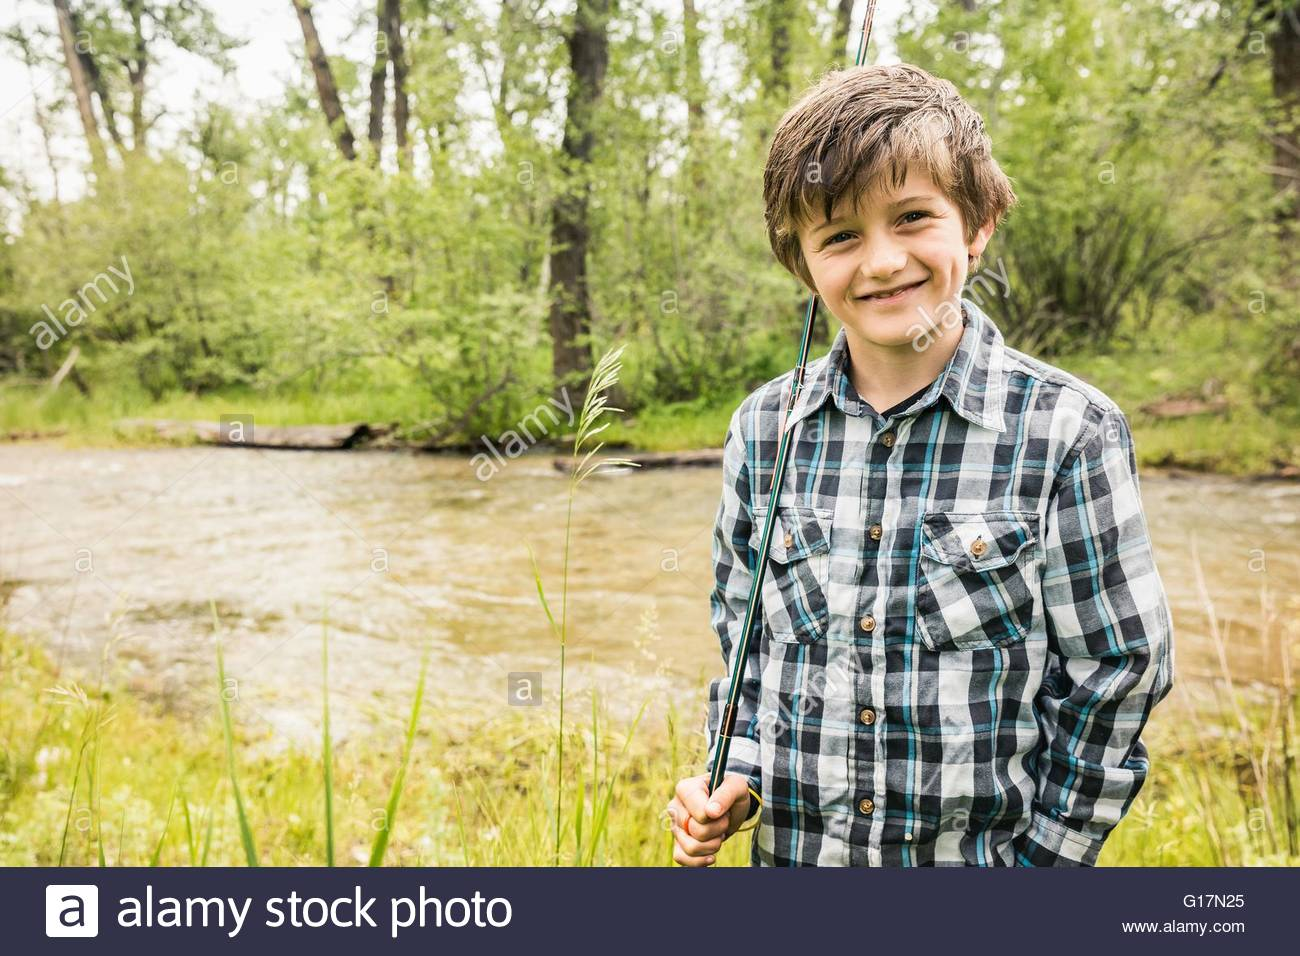 Boy wearing plaid shirt holding fishing rod by river looking at camera smiling - Stock Image